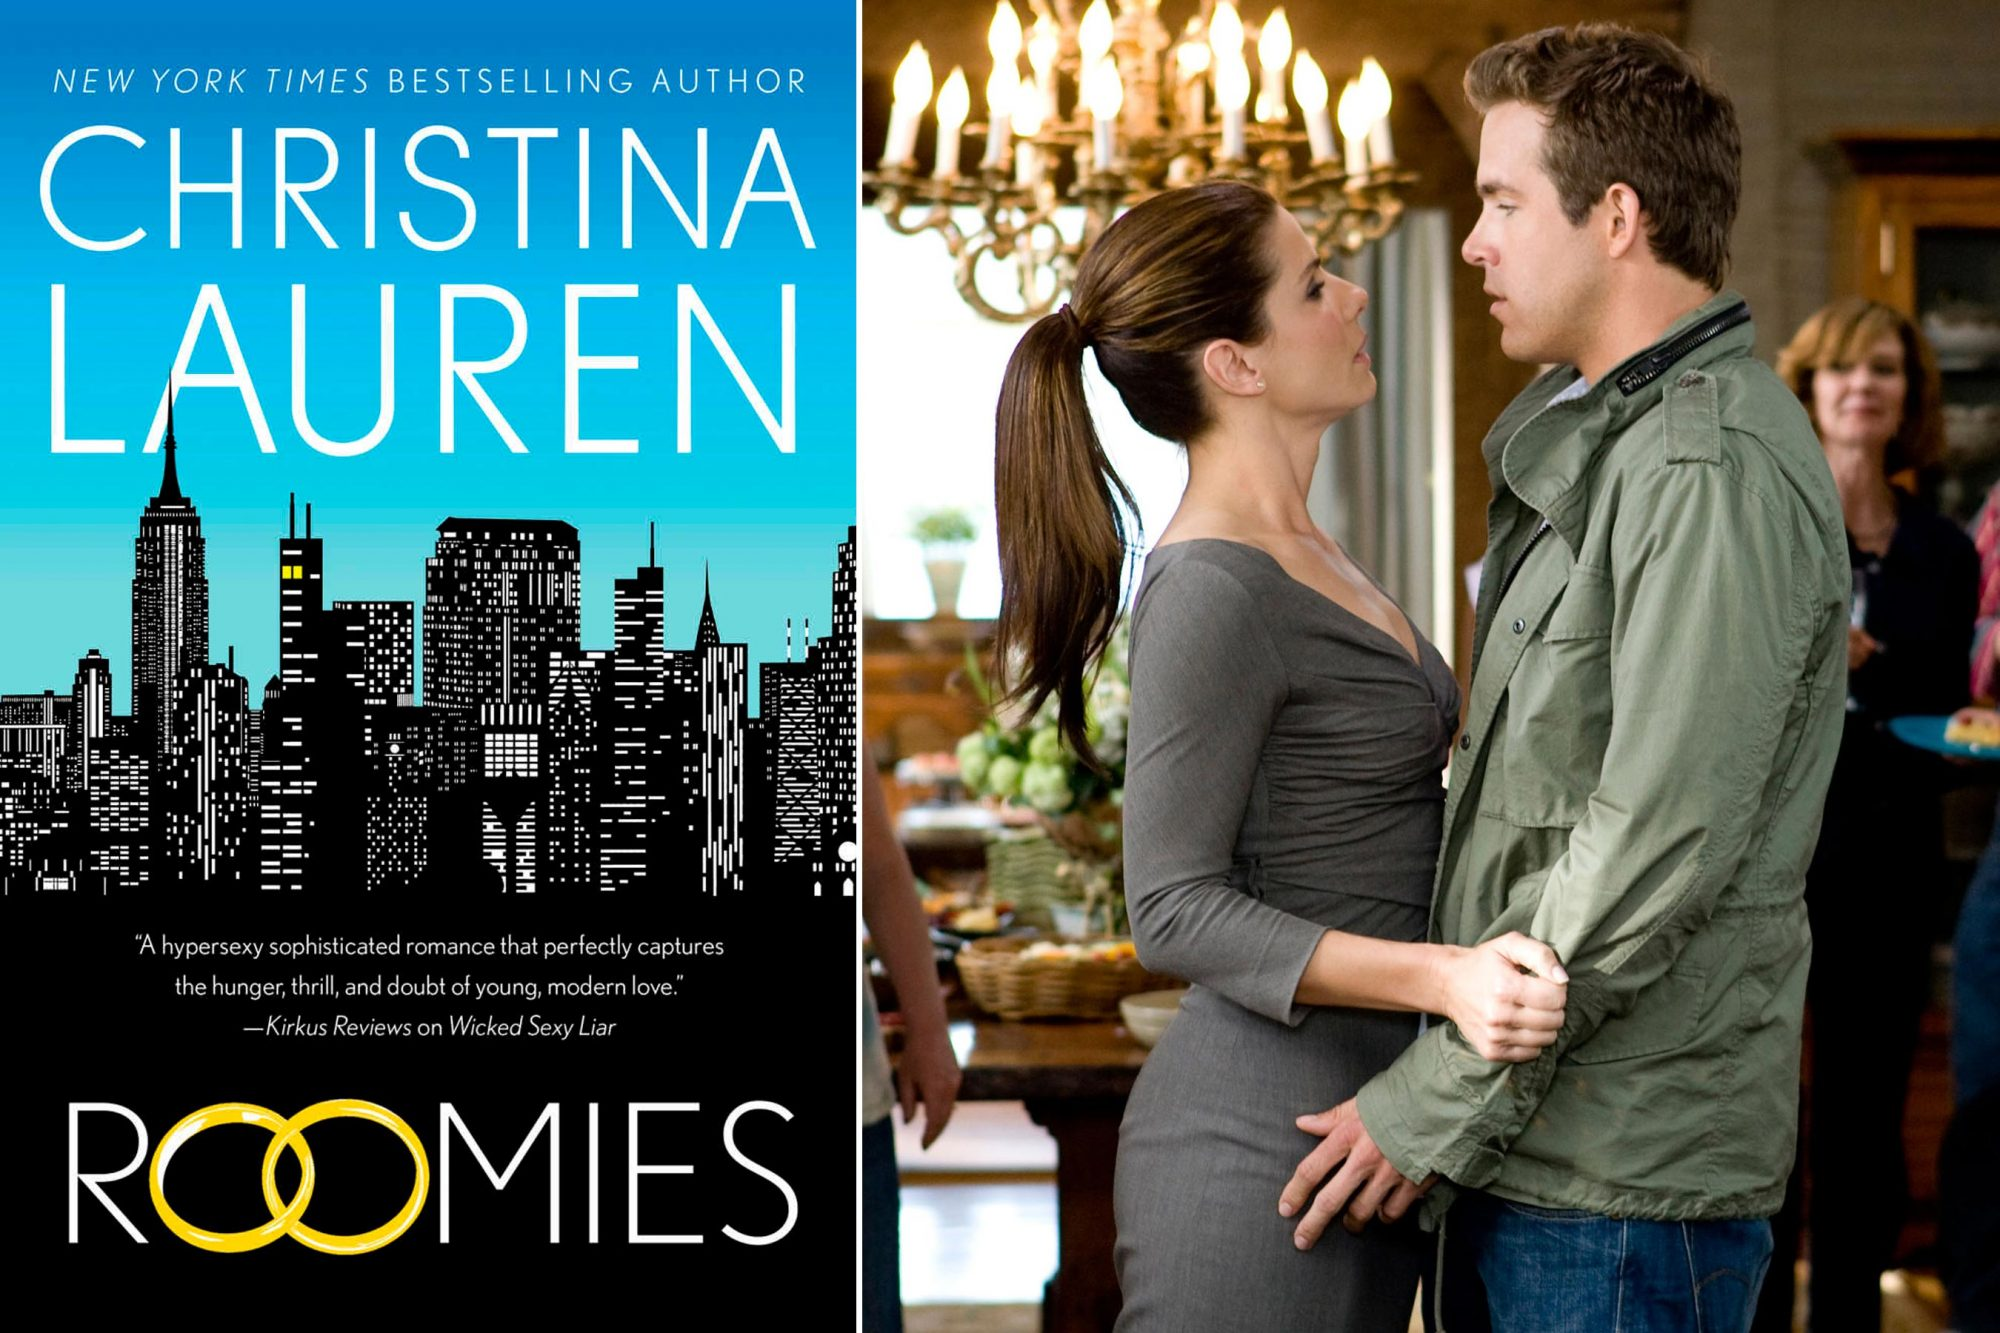 Read Roomies by Christina Lauren; Watch The Proposal (2009)